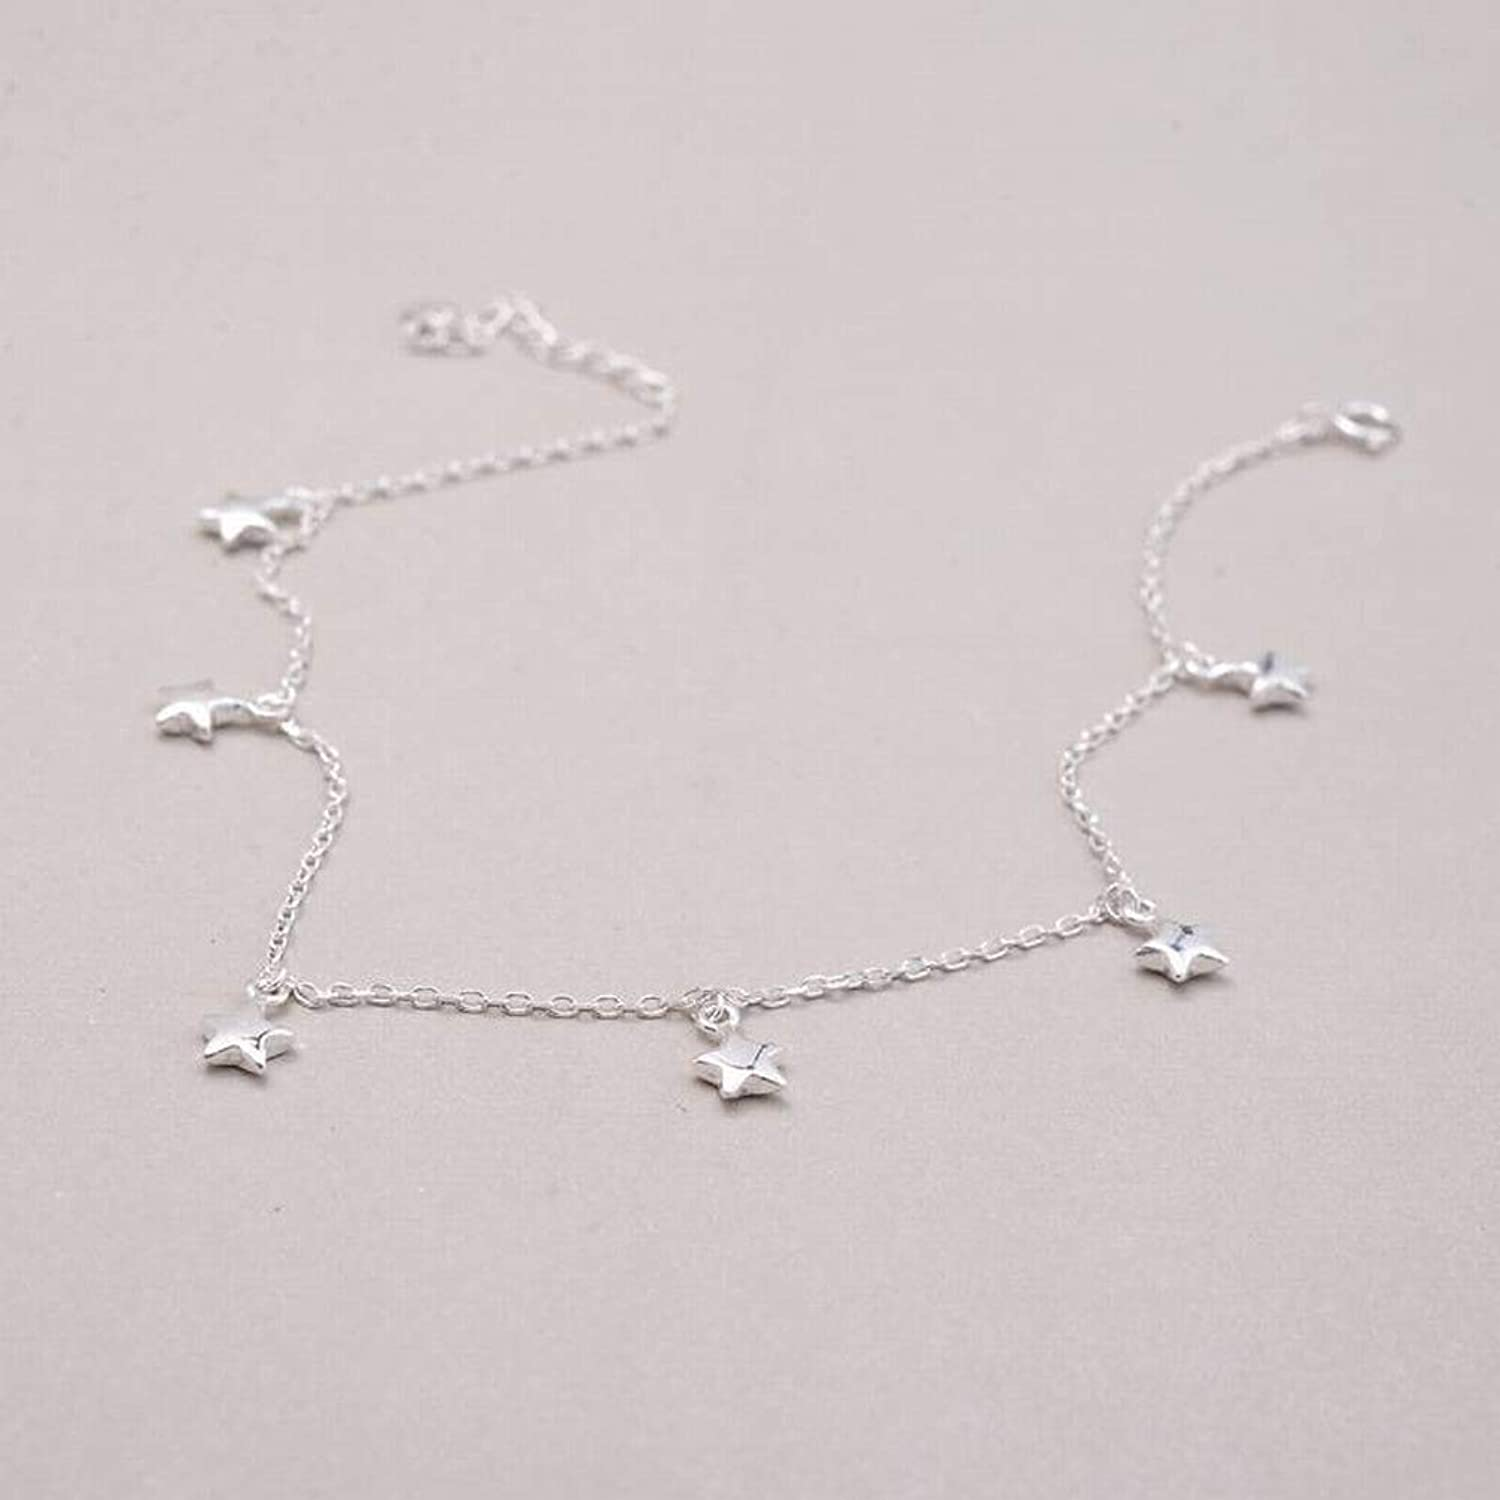 Zicue Stylish Charming Bracelet Exquisite Ornaments Women's Simple 925 Silver Star Plating Anklet FivePointed Star Anklet S925 Sterling Silver Anklet Multiple Stars Thin Feet ( color   925 silver )